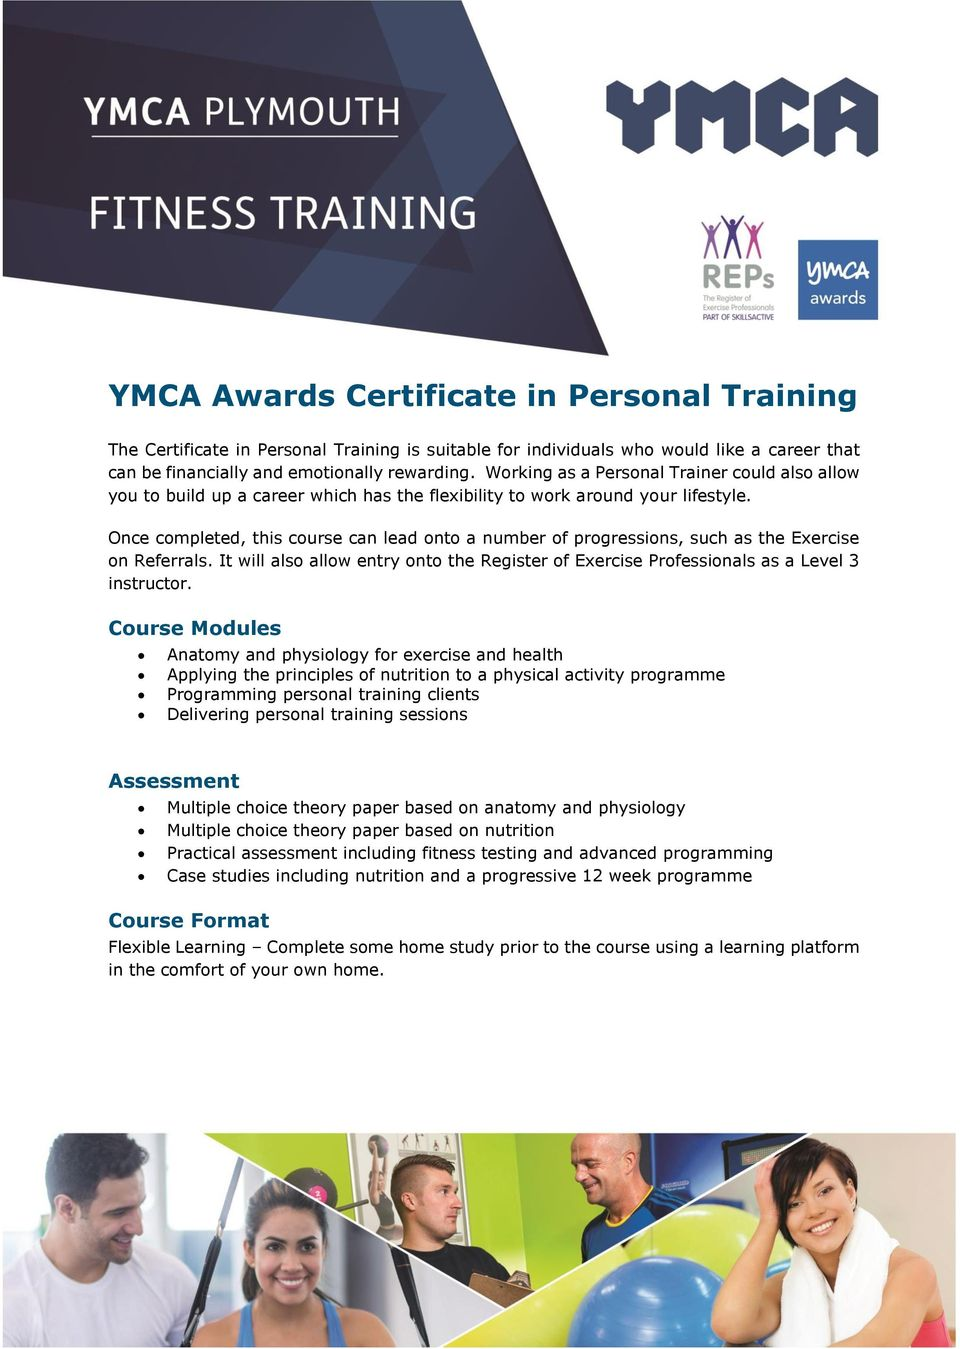 Once completed, this course can lead onto a number of progressions, such as the Exercise on Referrals. It will also allow entry onto the Register of Exercise Professionals as a Level 3 instructor.